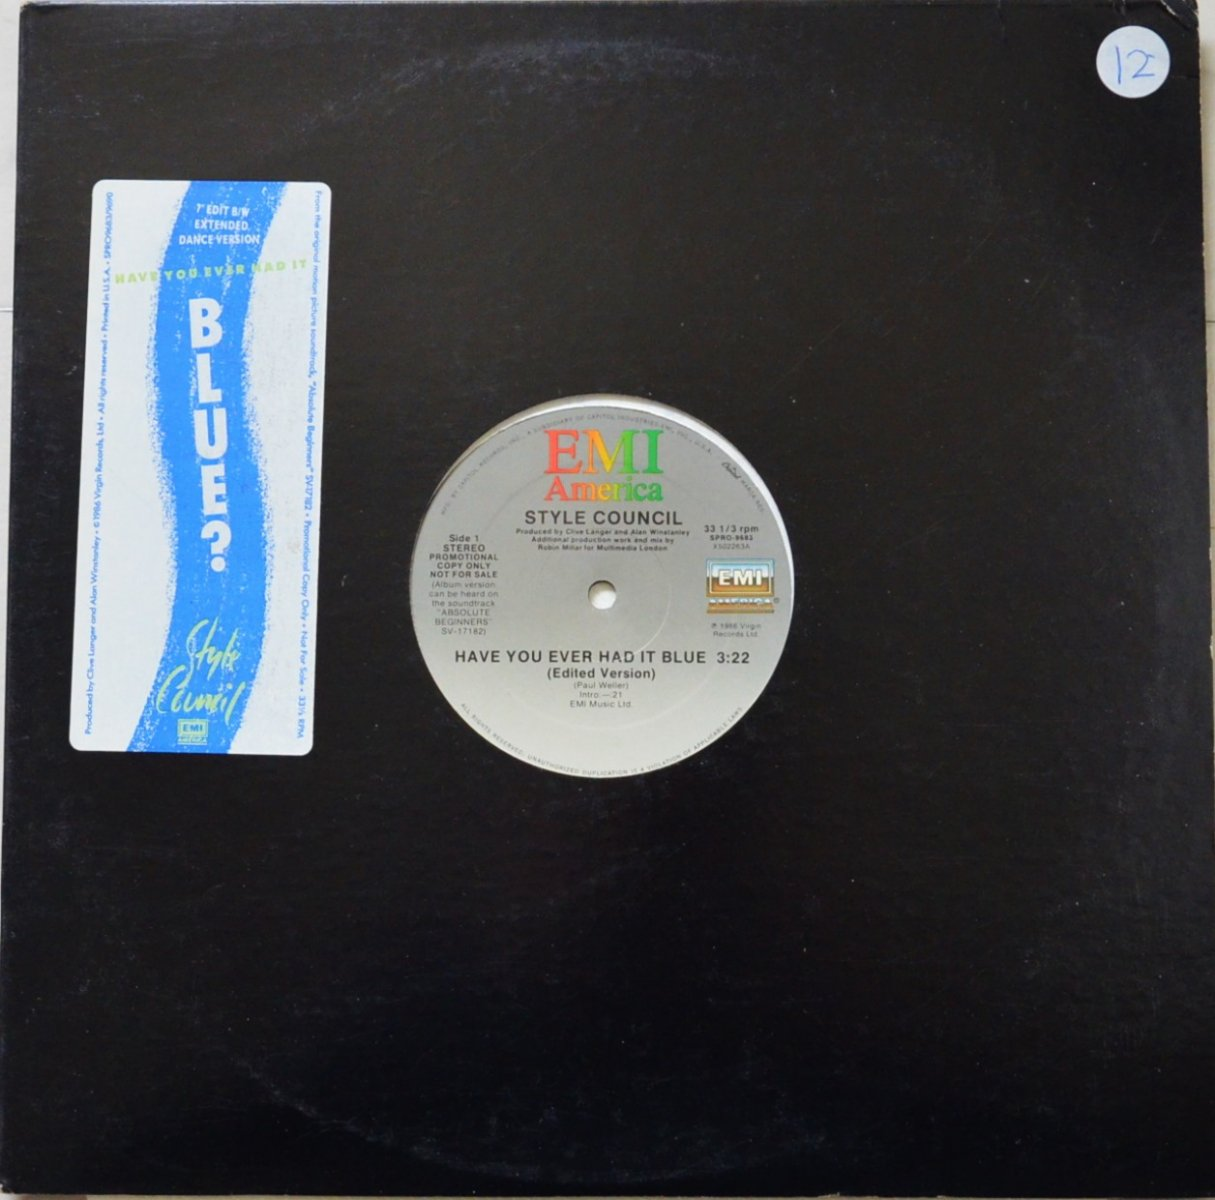 STYLE COUNCIL / HAVE YOU EVER HAD IT BLUE (12